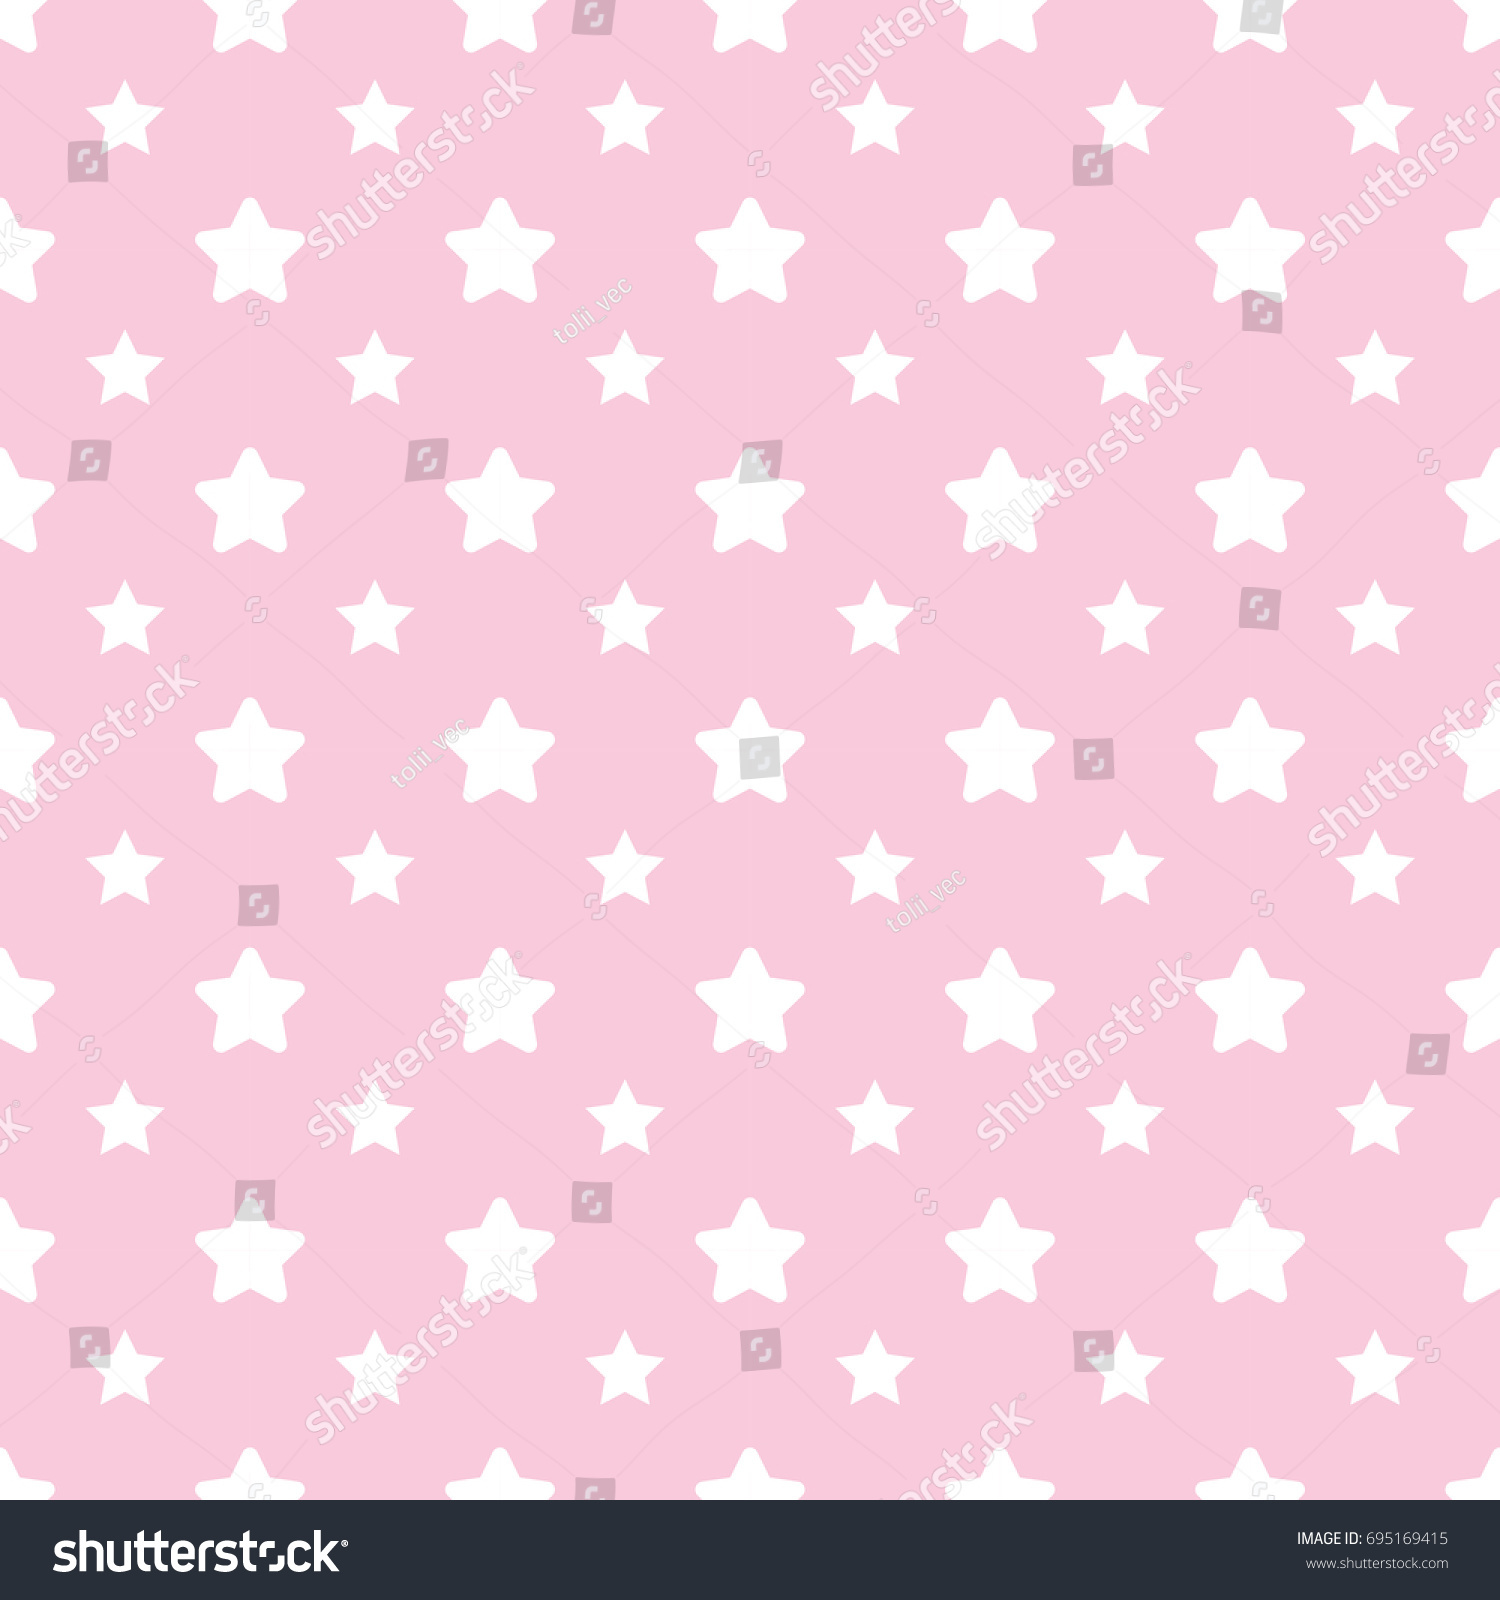 seamless pattern pastel pink baby background stock vector (royalty